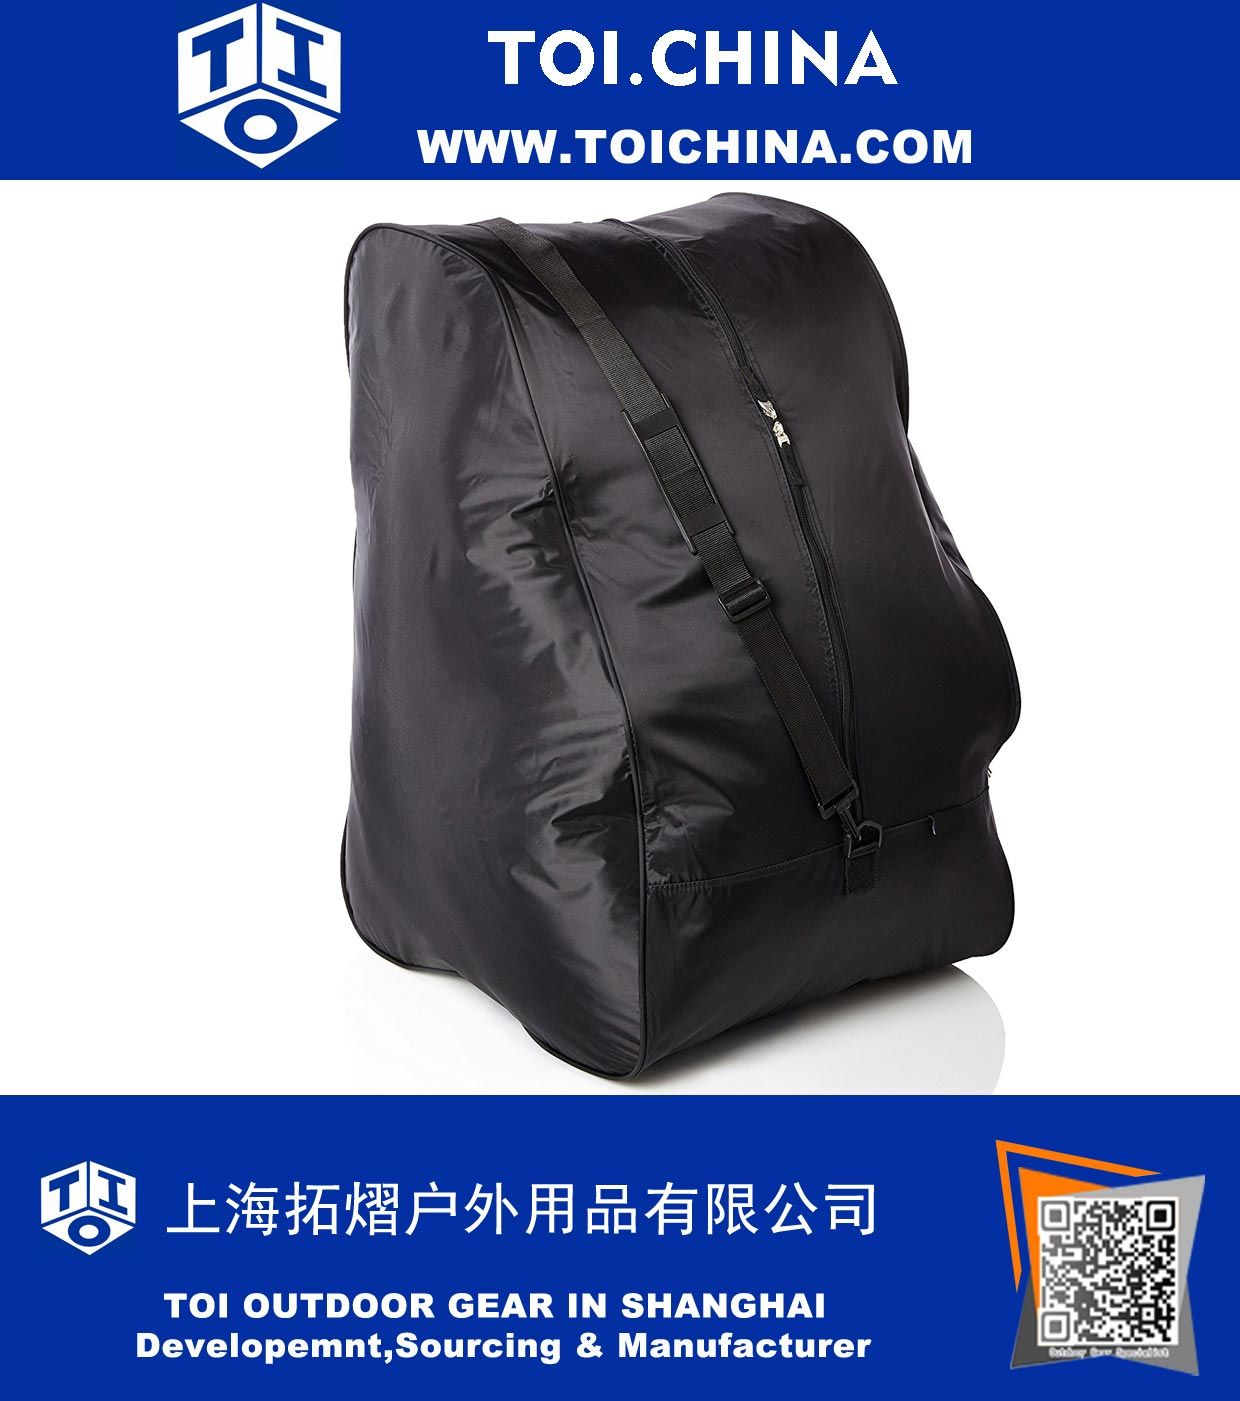 Car Seat Travel Bag, Nylon, Universal Size, Fits All Car Seats, Shoulder Strap Included, TY-QC008